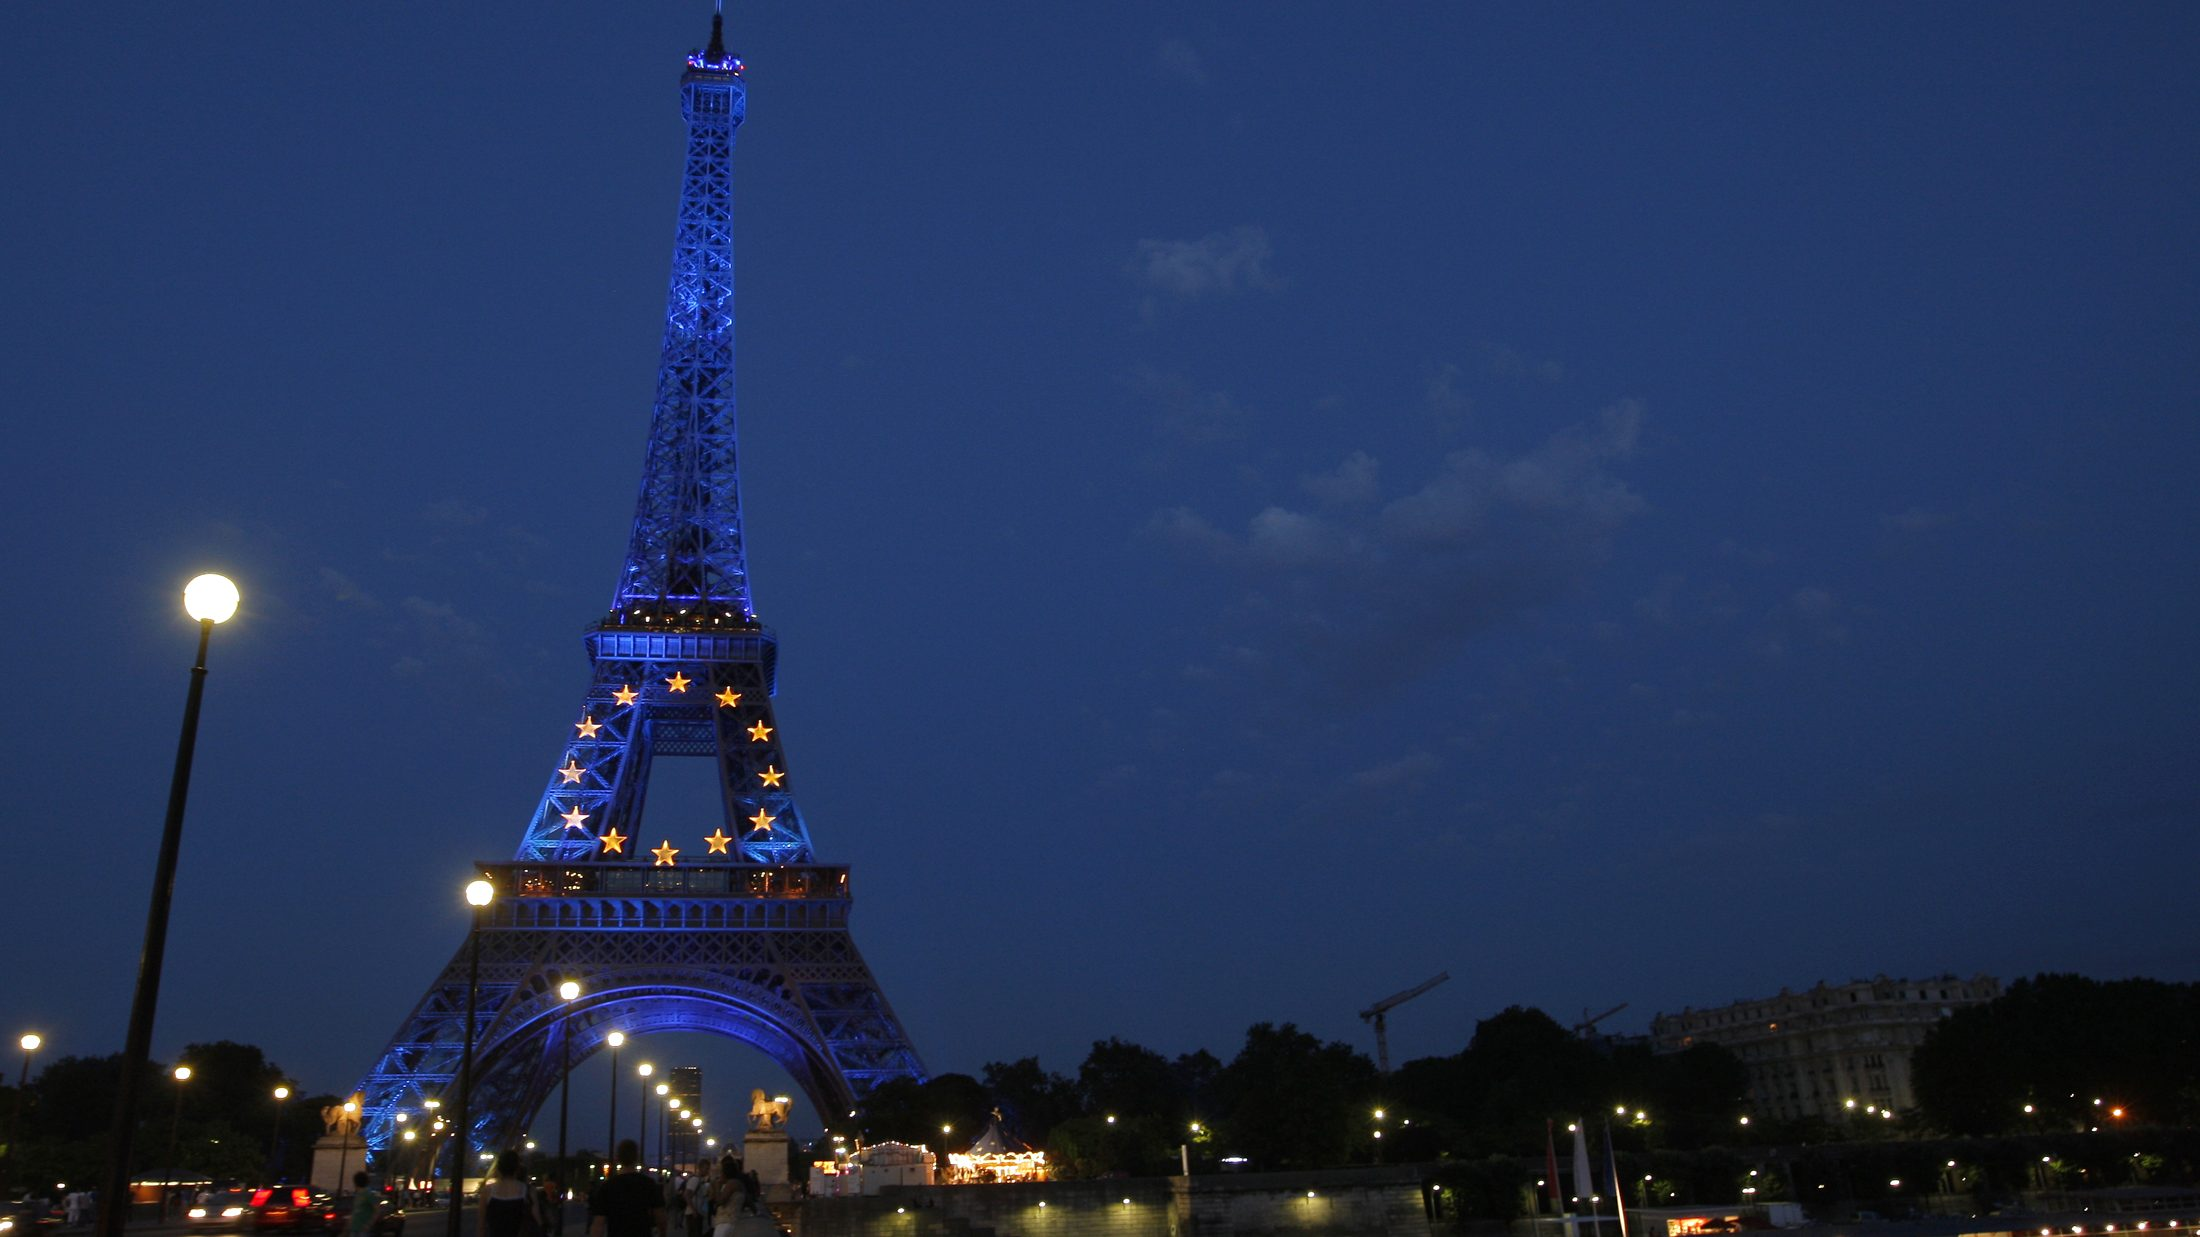 The Eiffel Tower in Paris is lighted up as France marks the start of its six-month presidency of the European Union